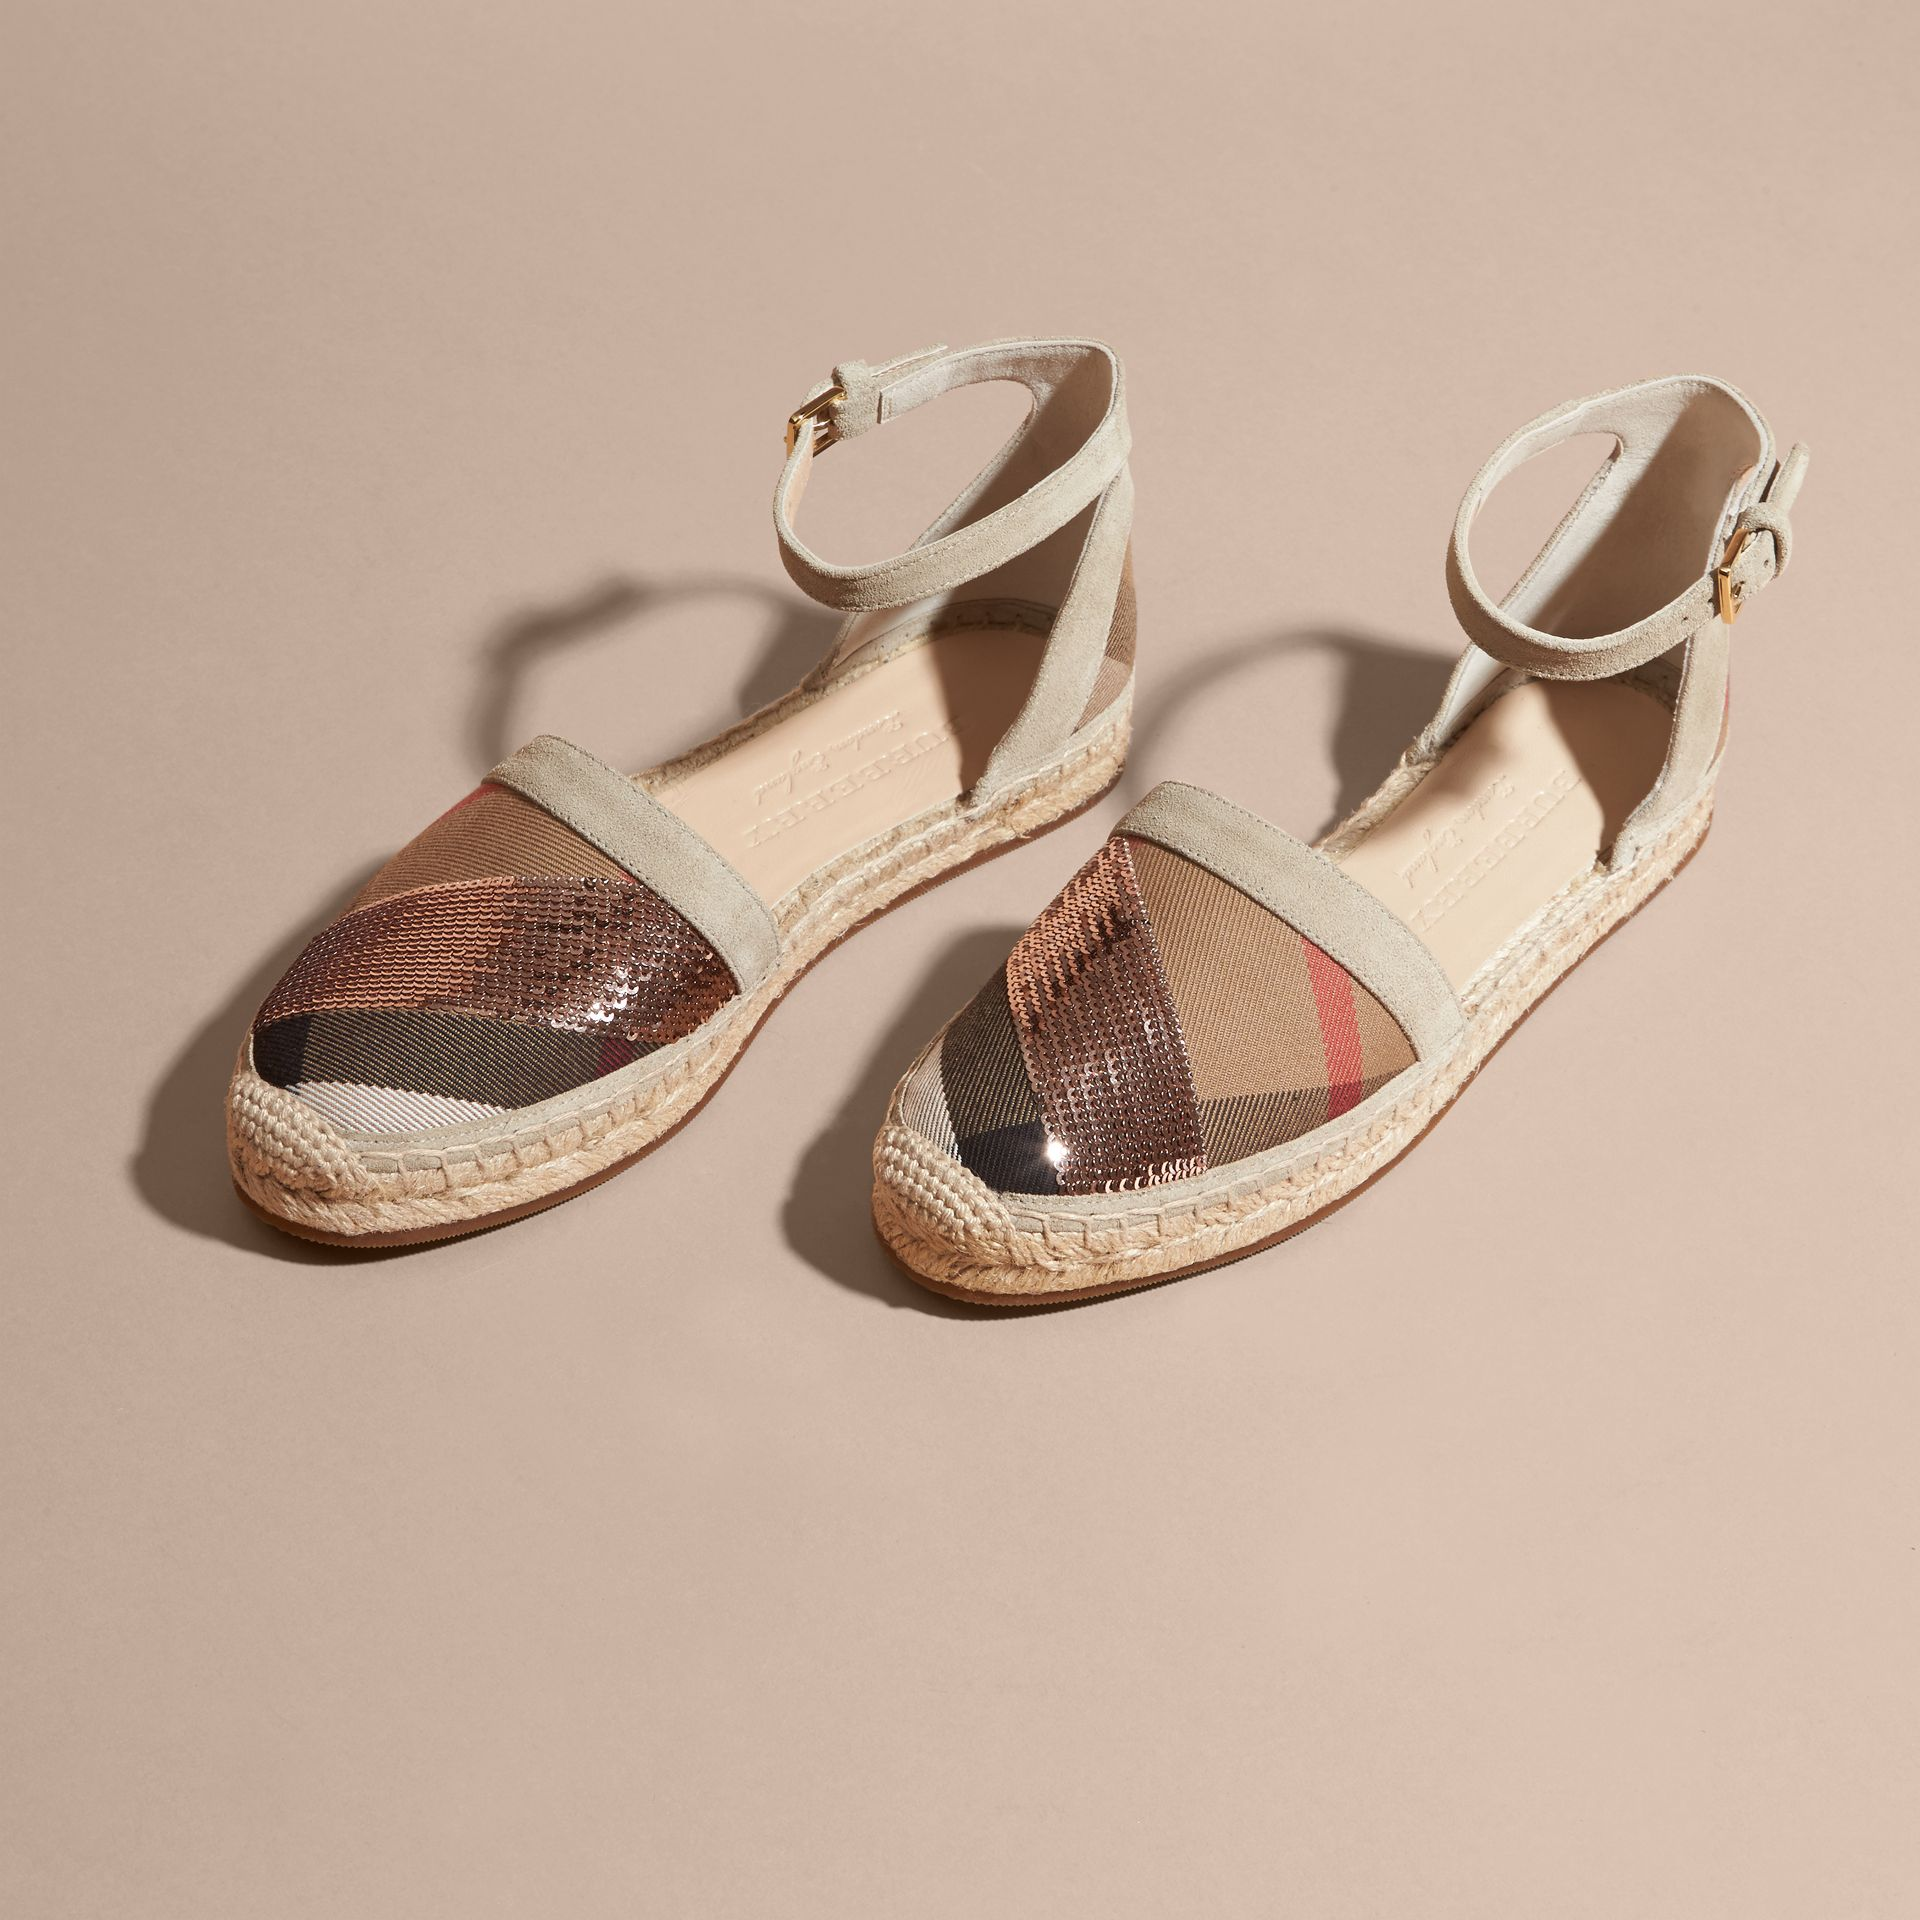 House check/pale pink Sequinned Leather and House Check Espadrille Sandals Check/pale Pink - gallery image 3